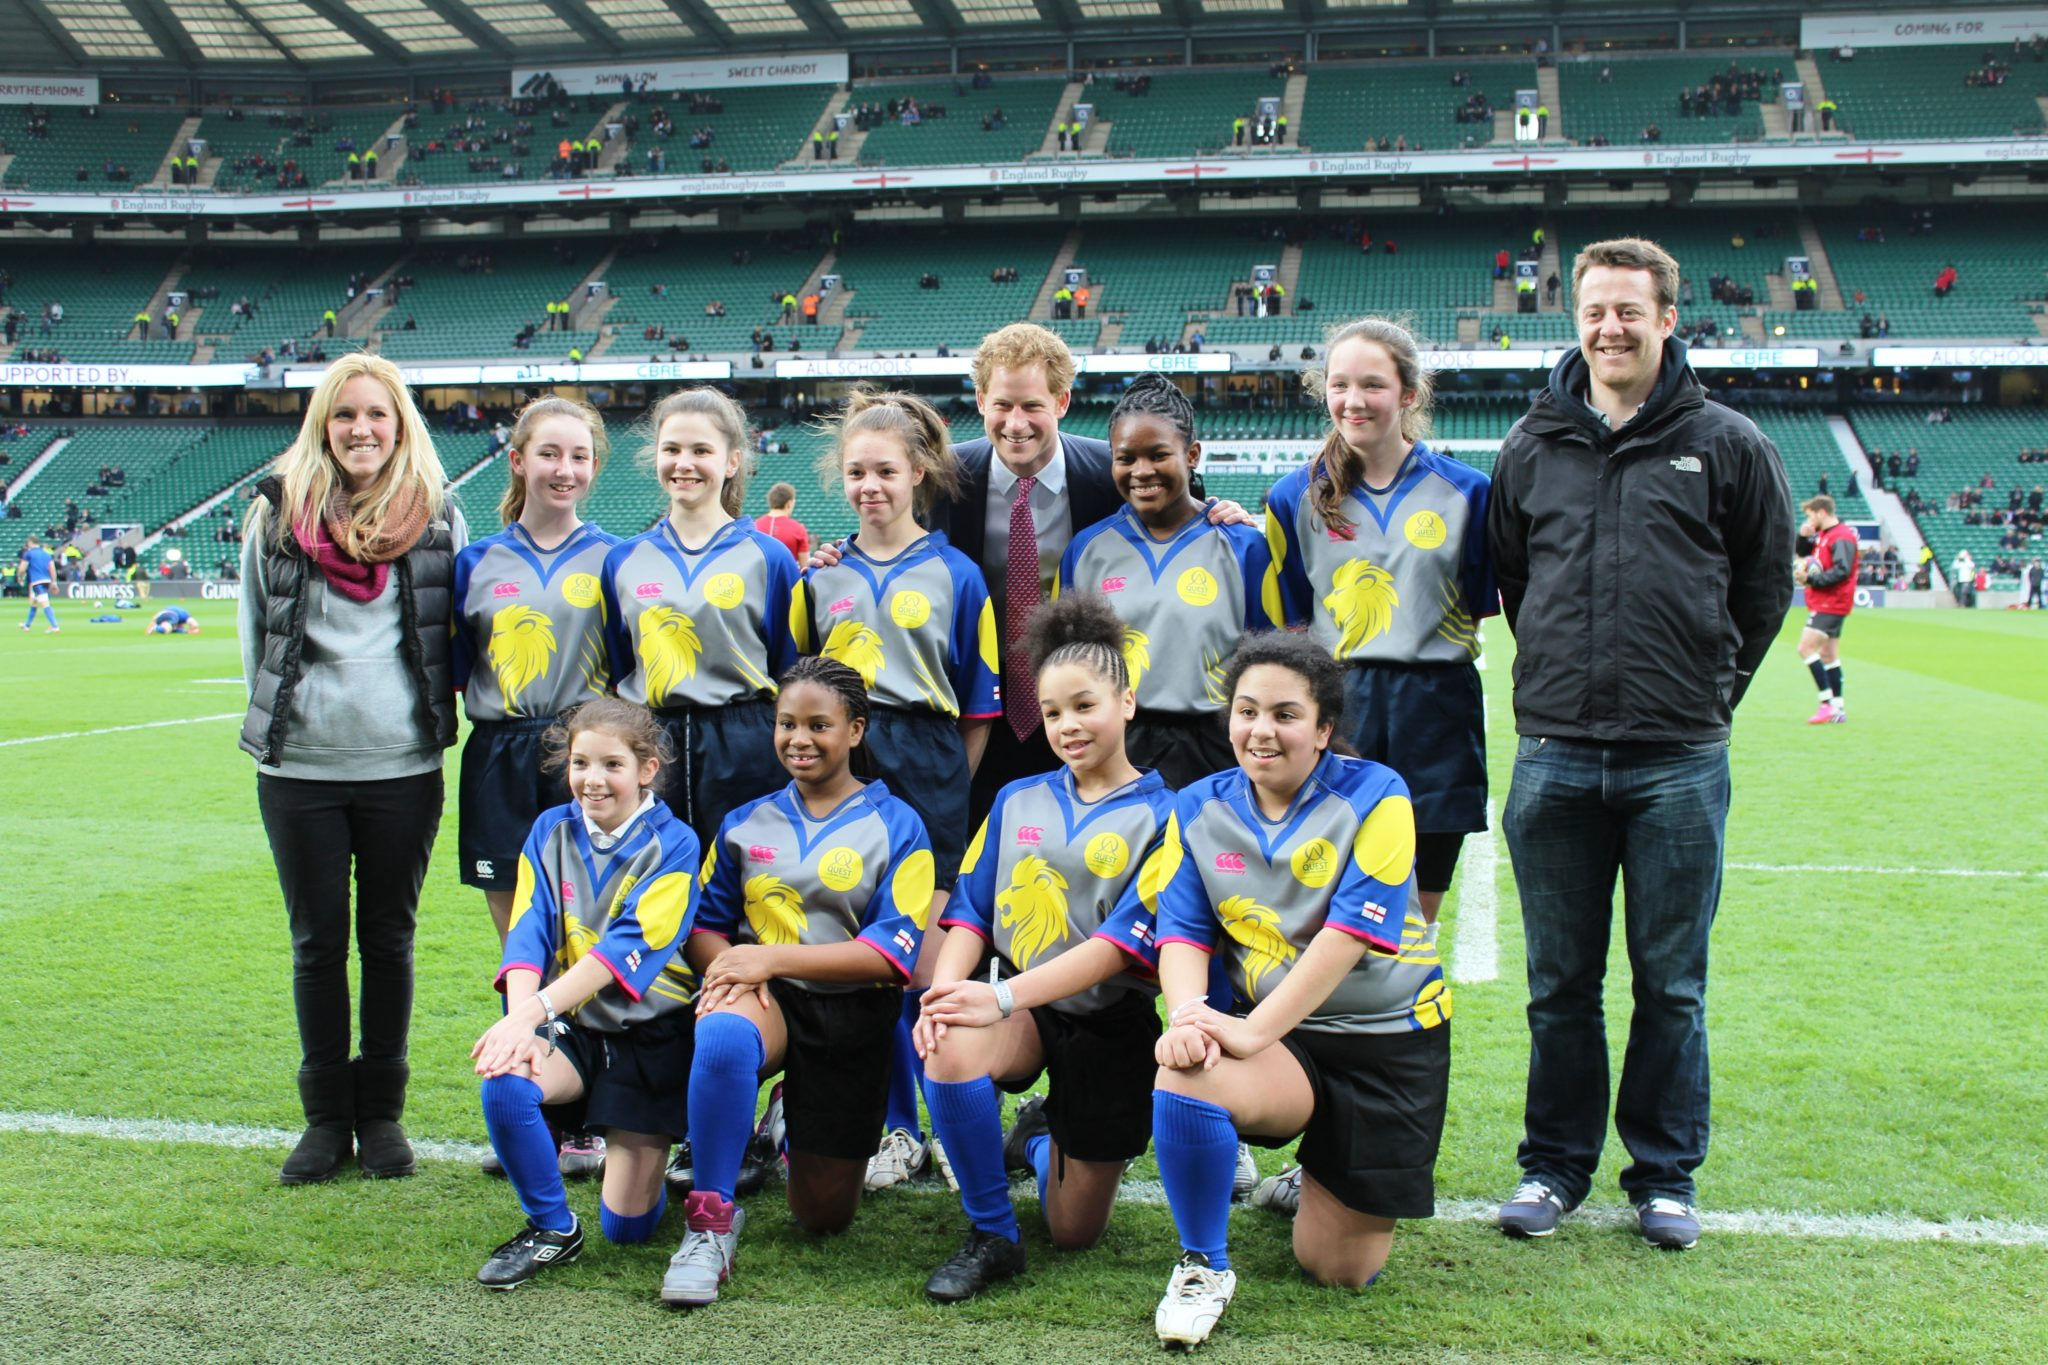 The Quest Academy And Sixth Form In Croydon Rugby Girls